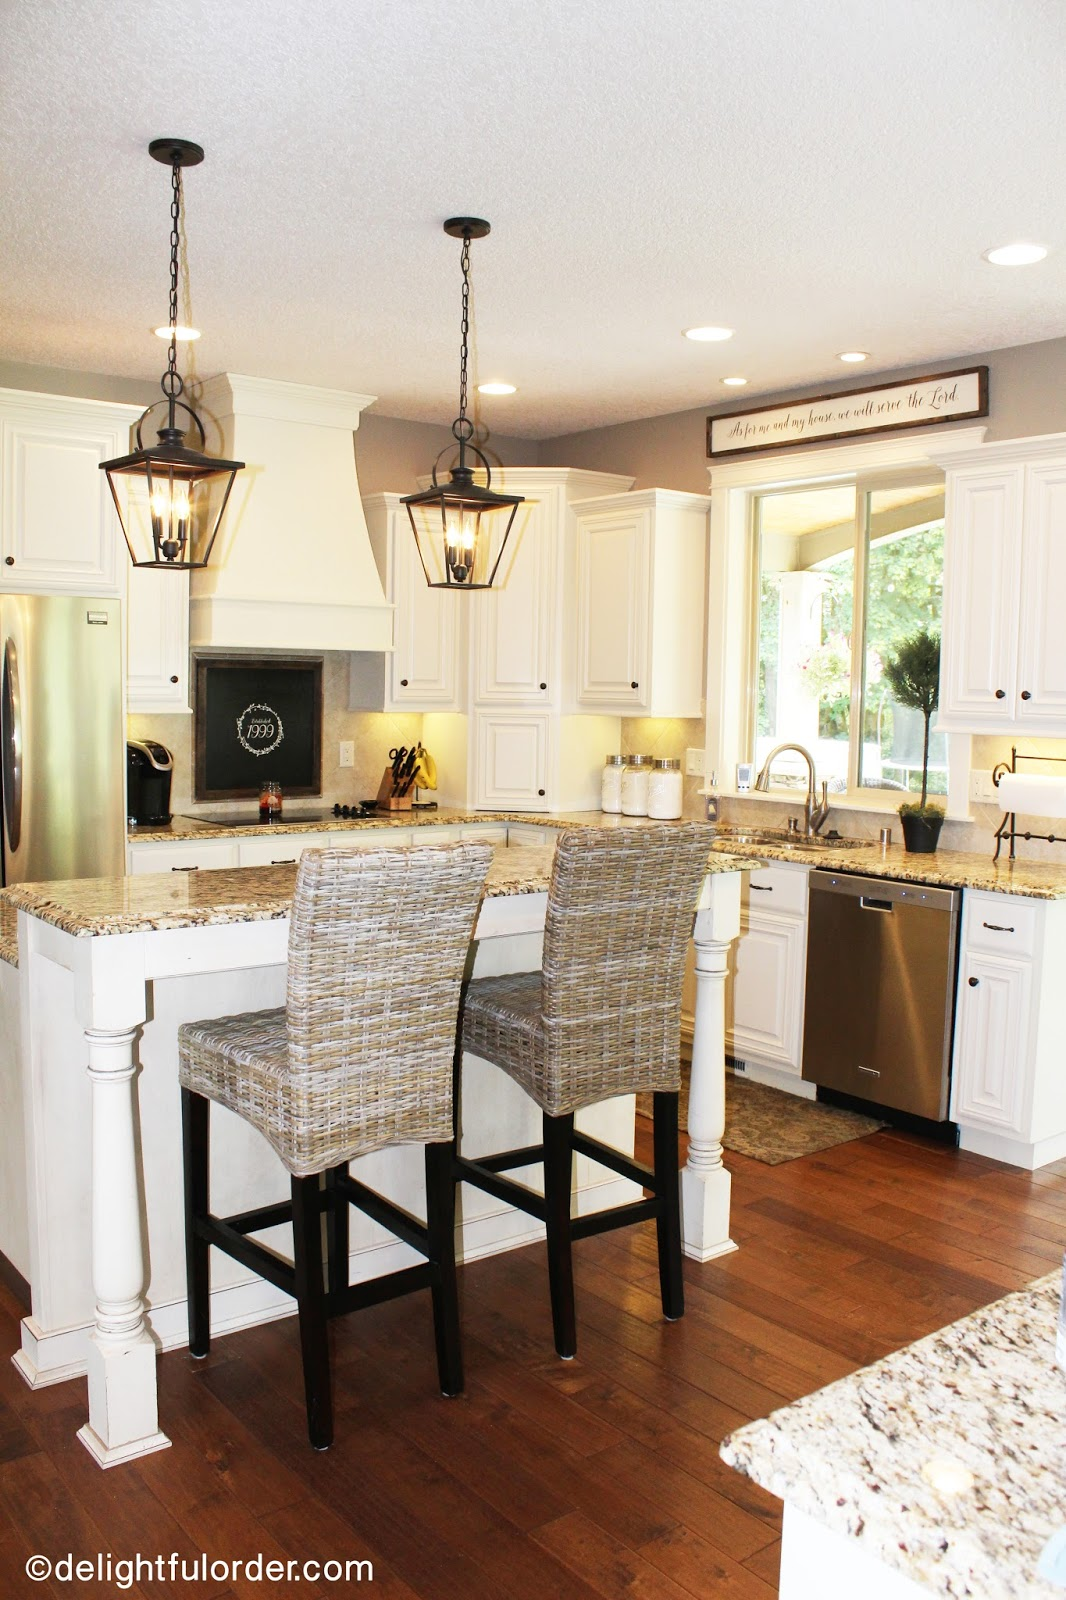 Delightful Order: My Kitchen Makeover: White Painted Cabinets